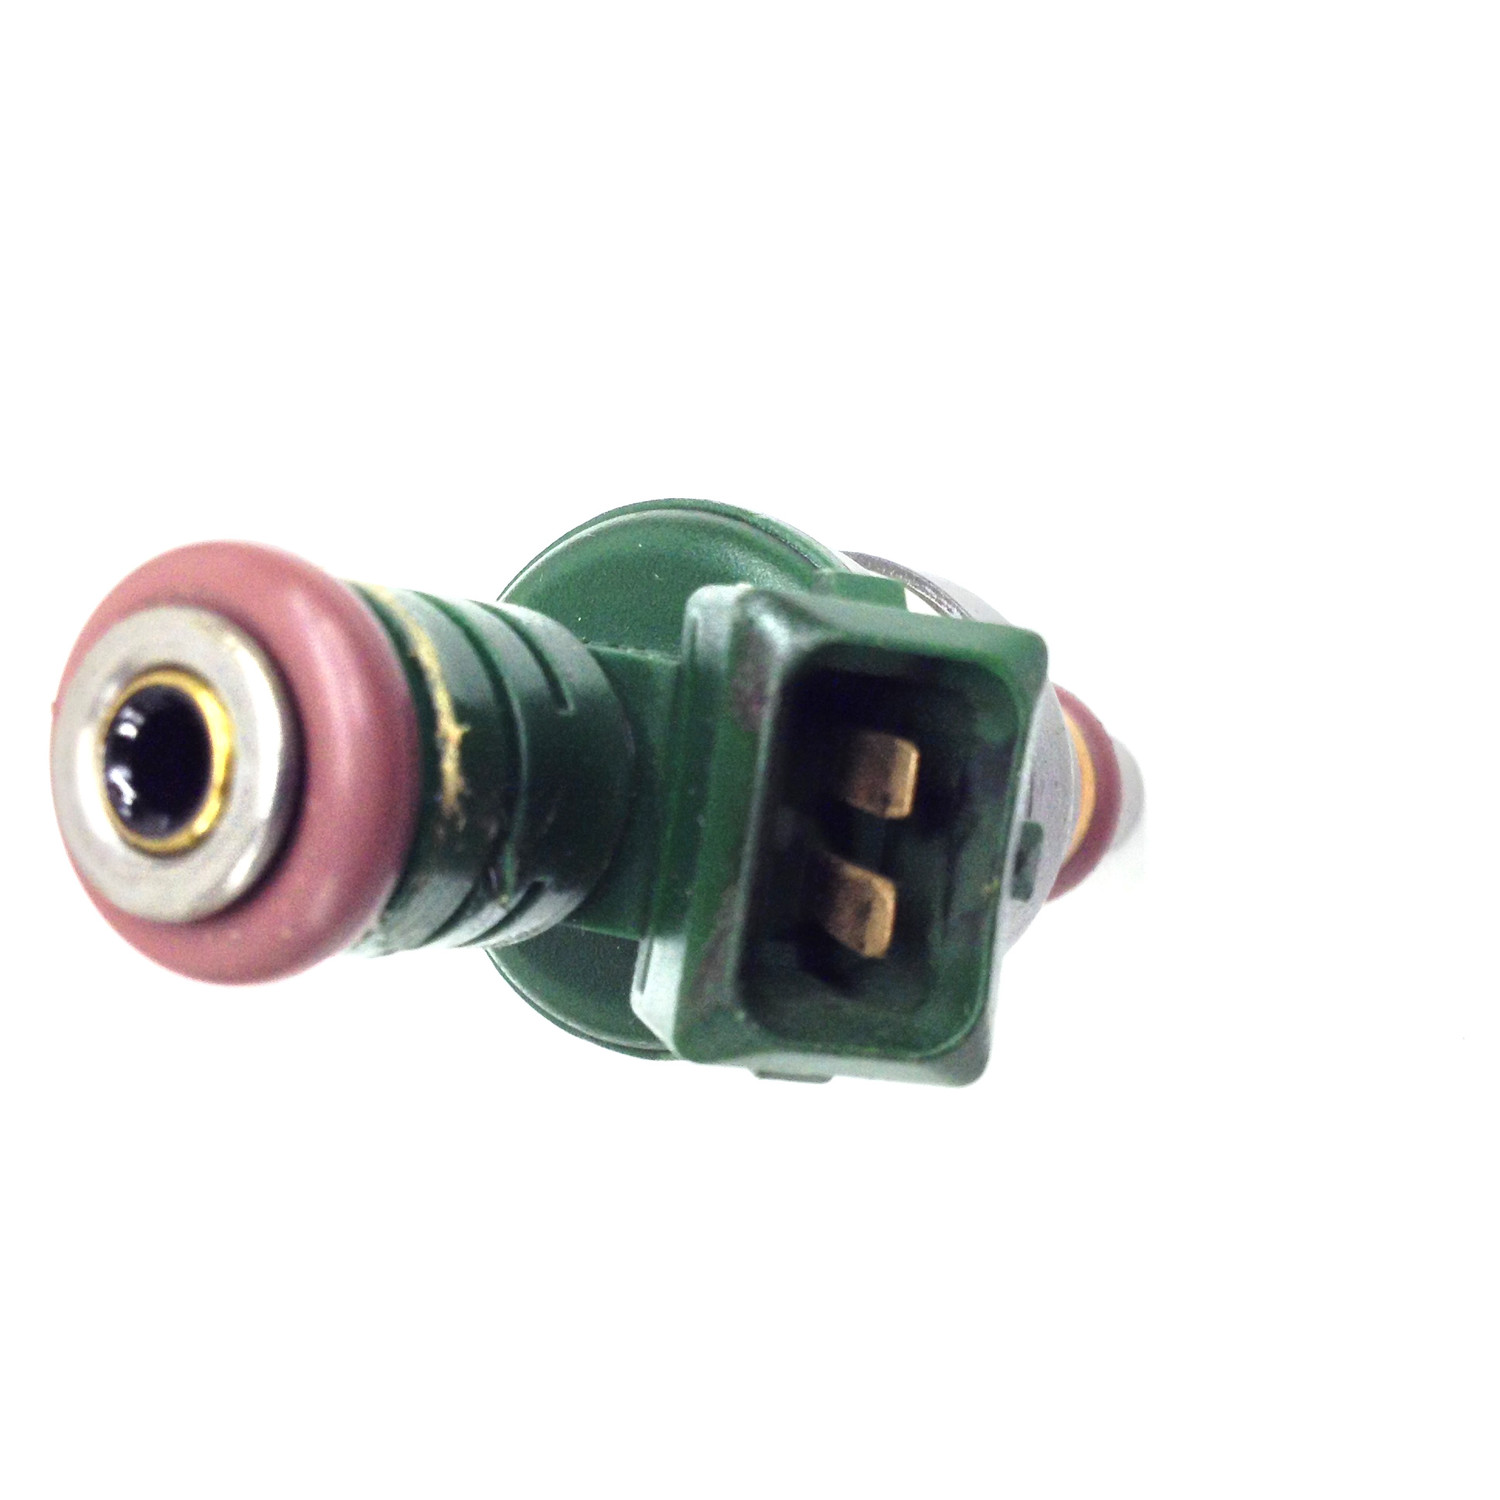 UNITED REMANUFACTURING CO - Fuel Injector - URC 8126